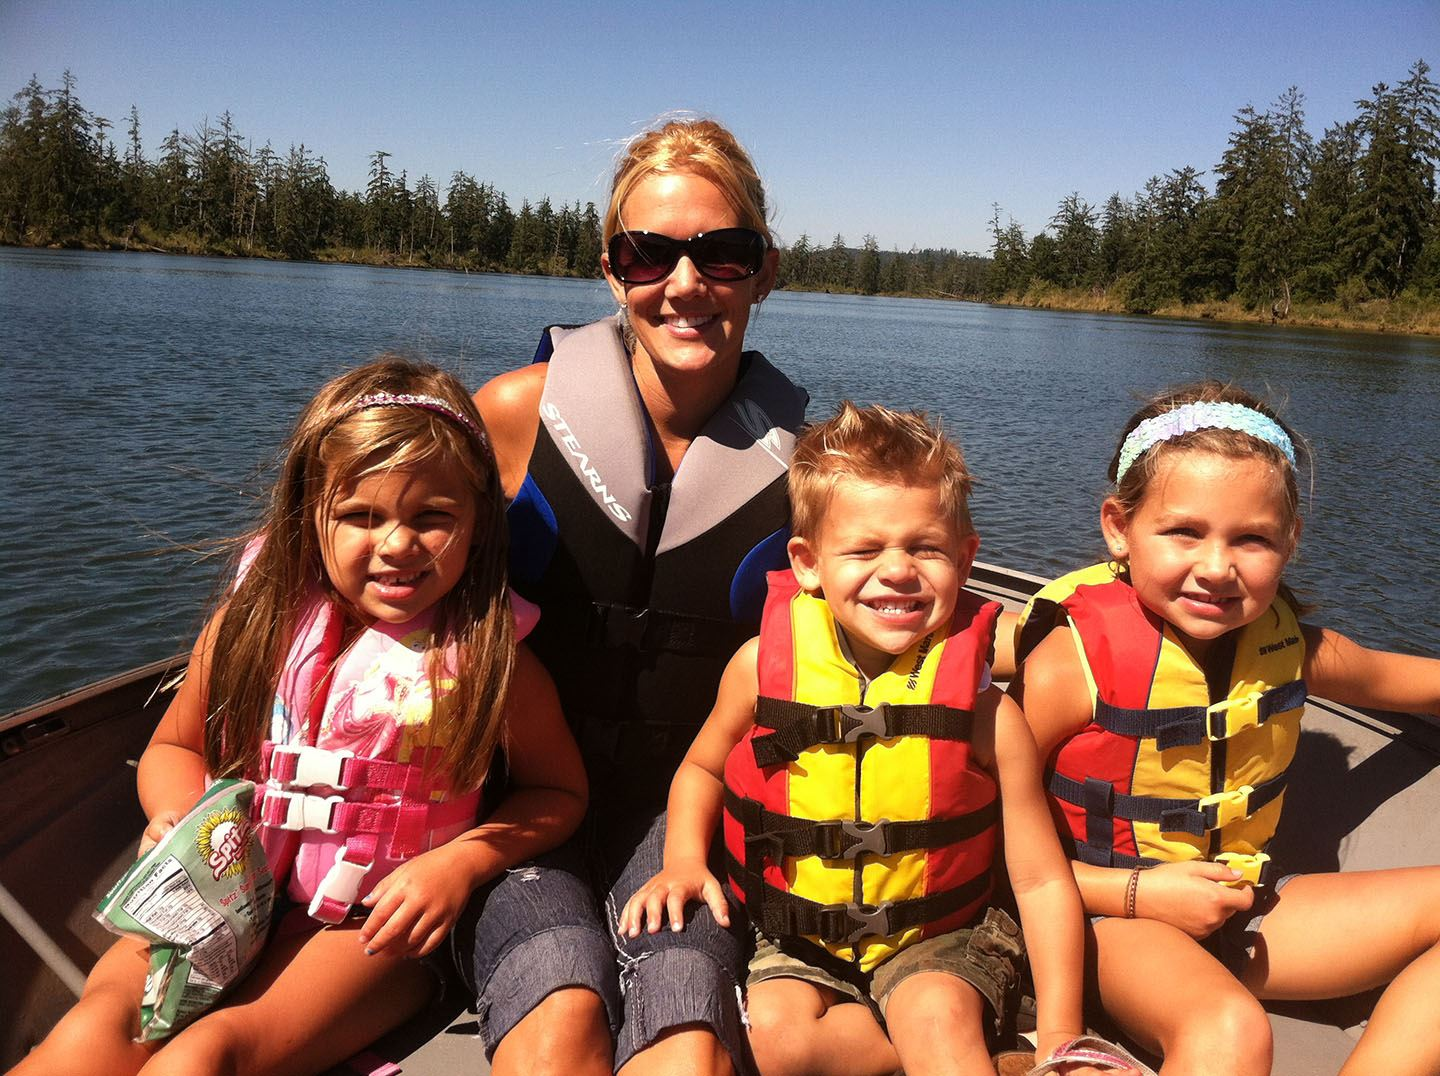 Adult and children wearing life jackets